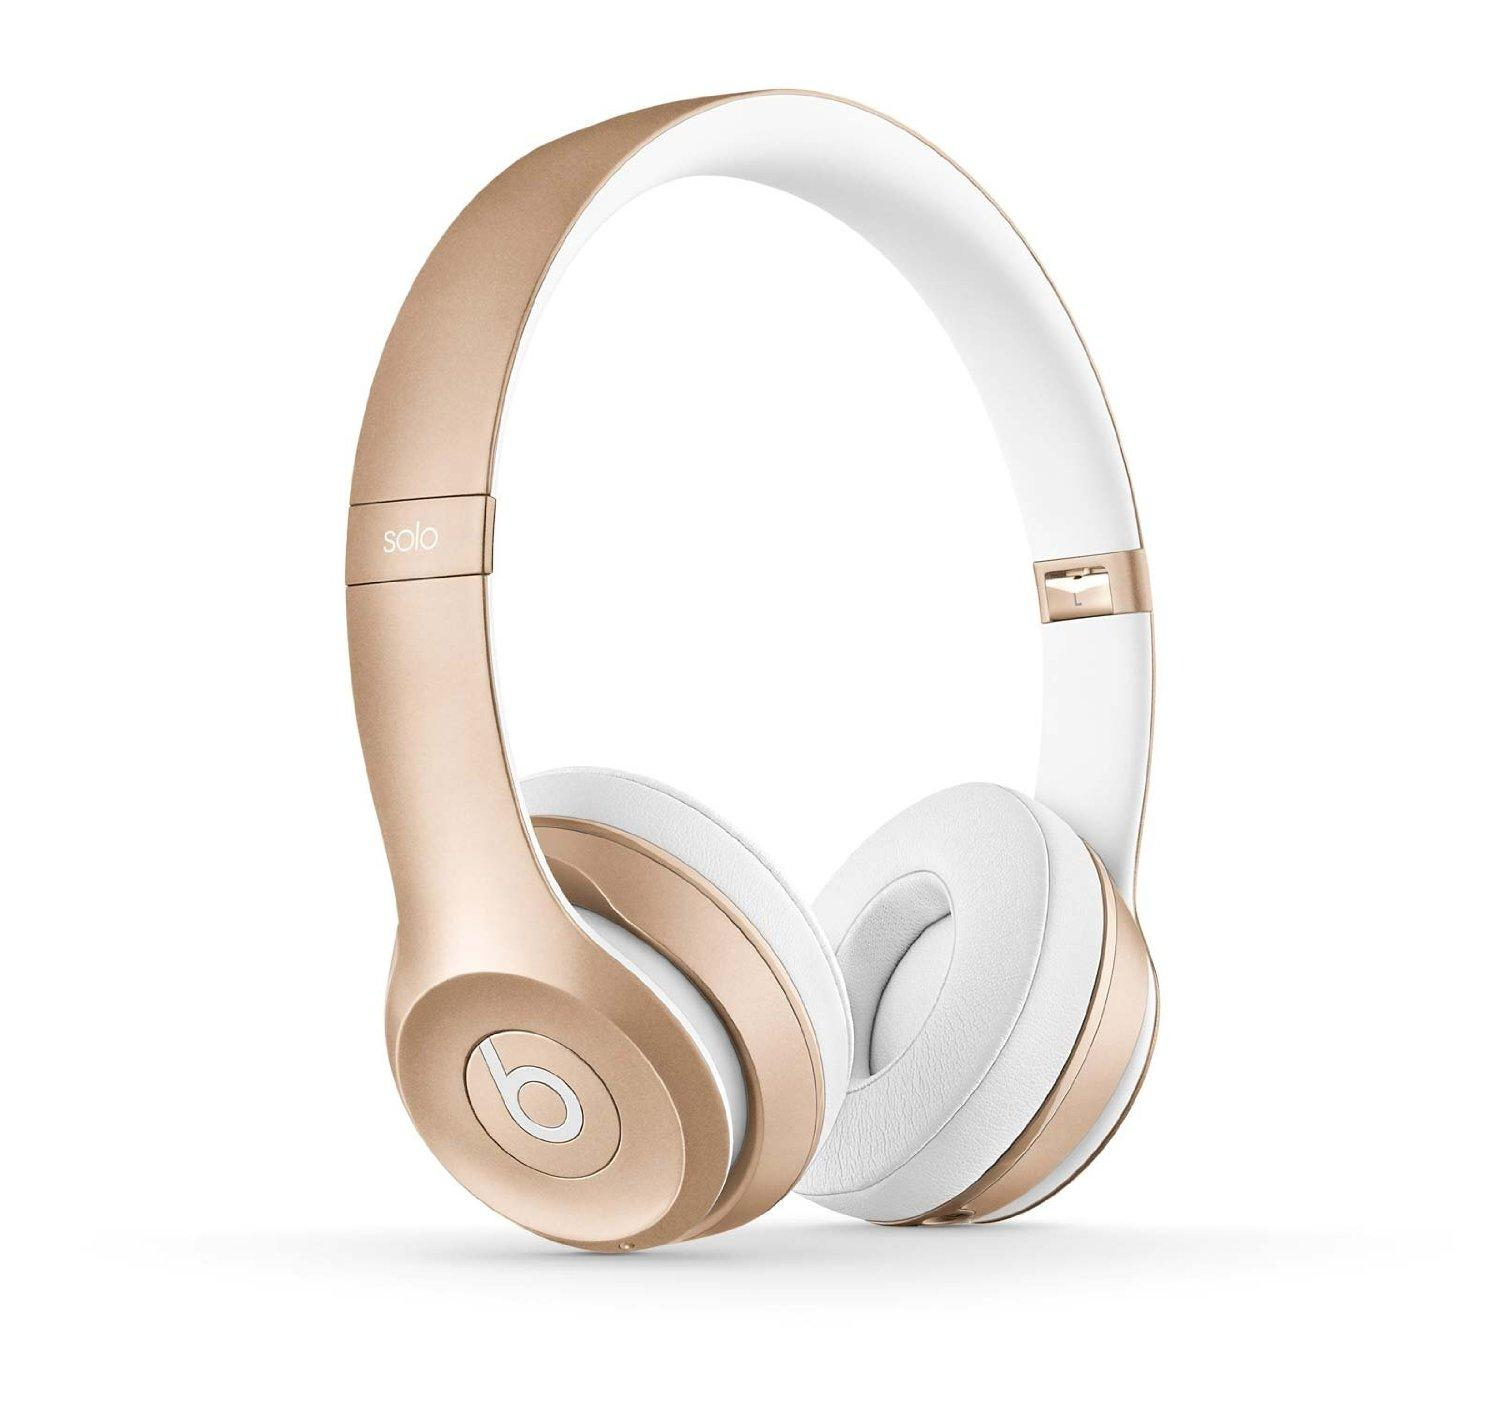 FROM $183.96 Beats Solo2 Wireless On-Ear Headphones